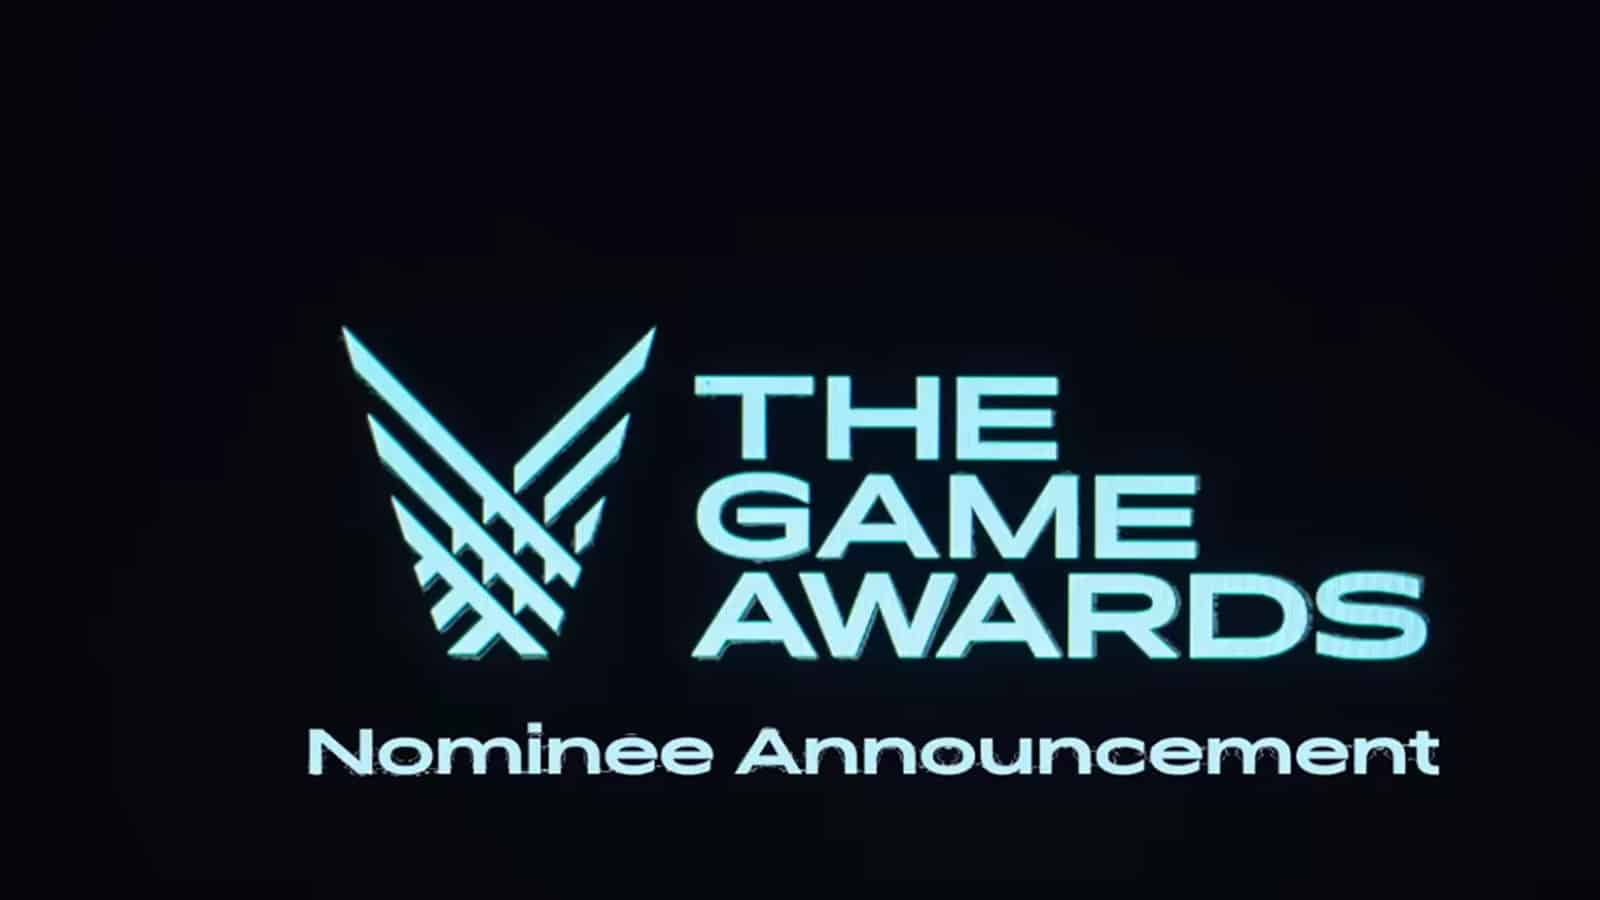 The Game Awards 2018 Nominations